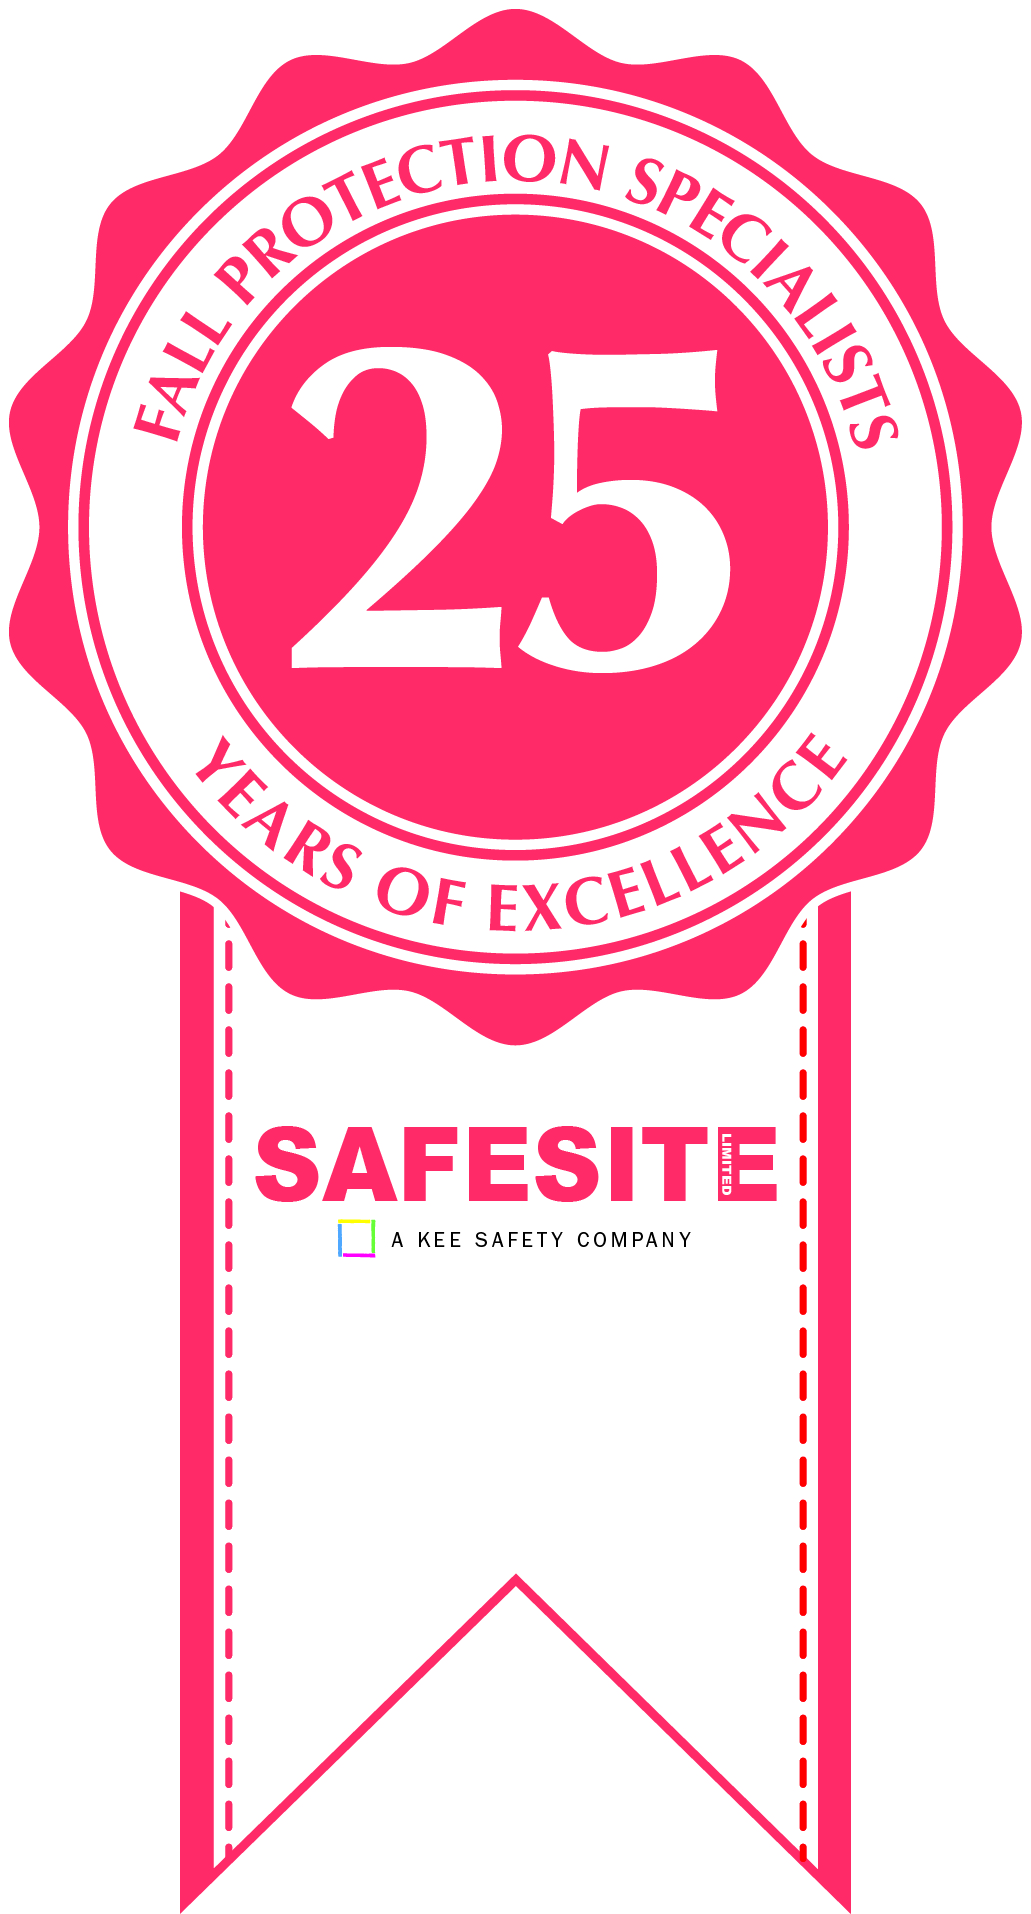 Safesite fall protection specialists